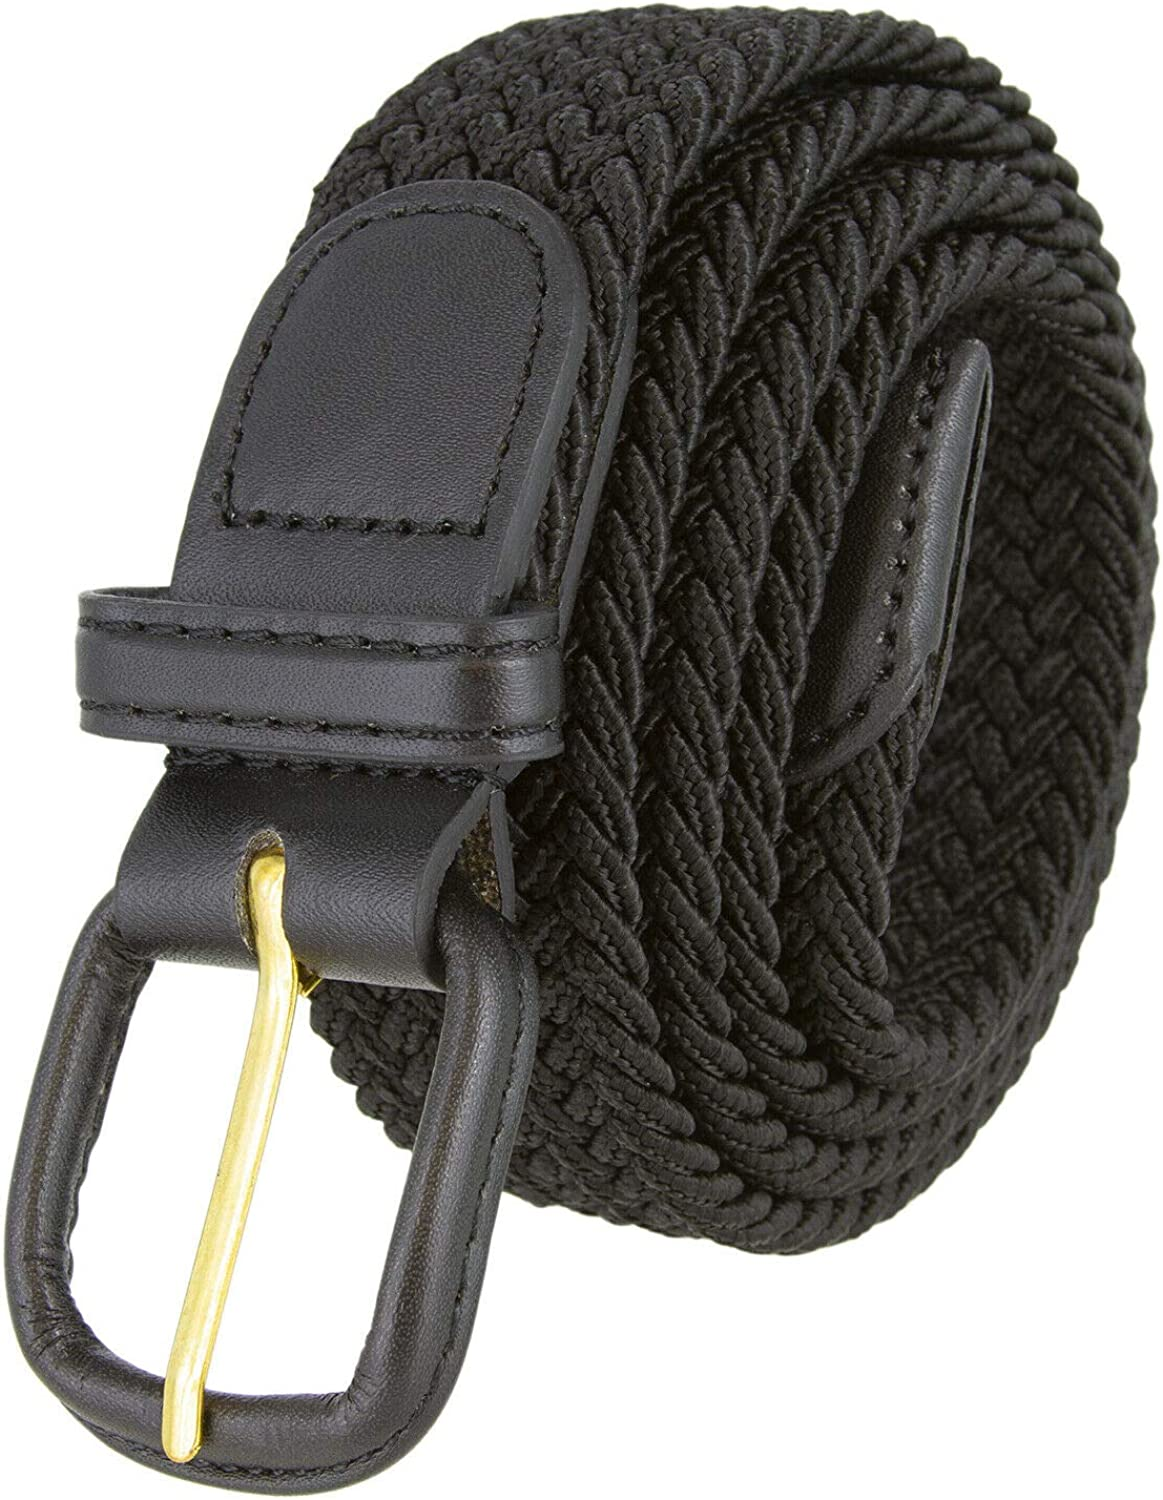 Belts.com Leather Covered Buckle Woven Elastic Stretch Belt